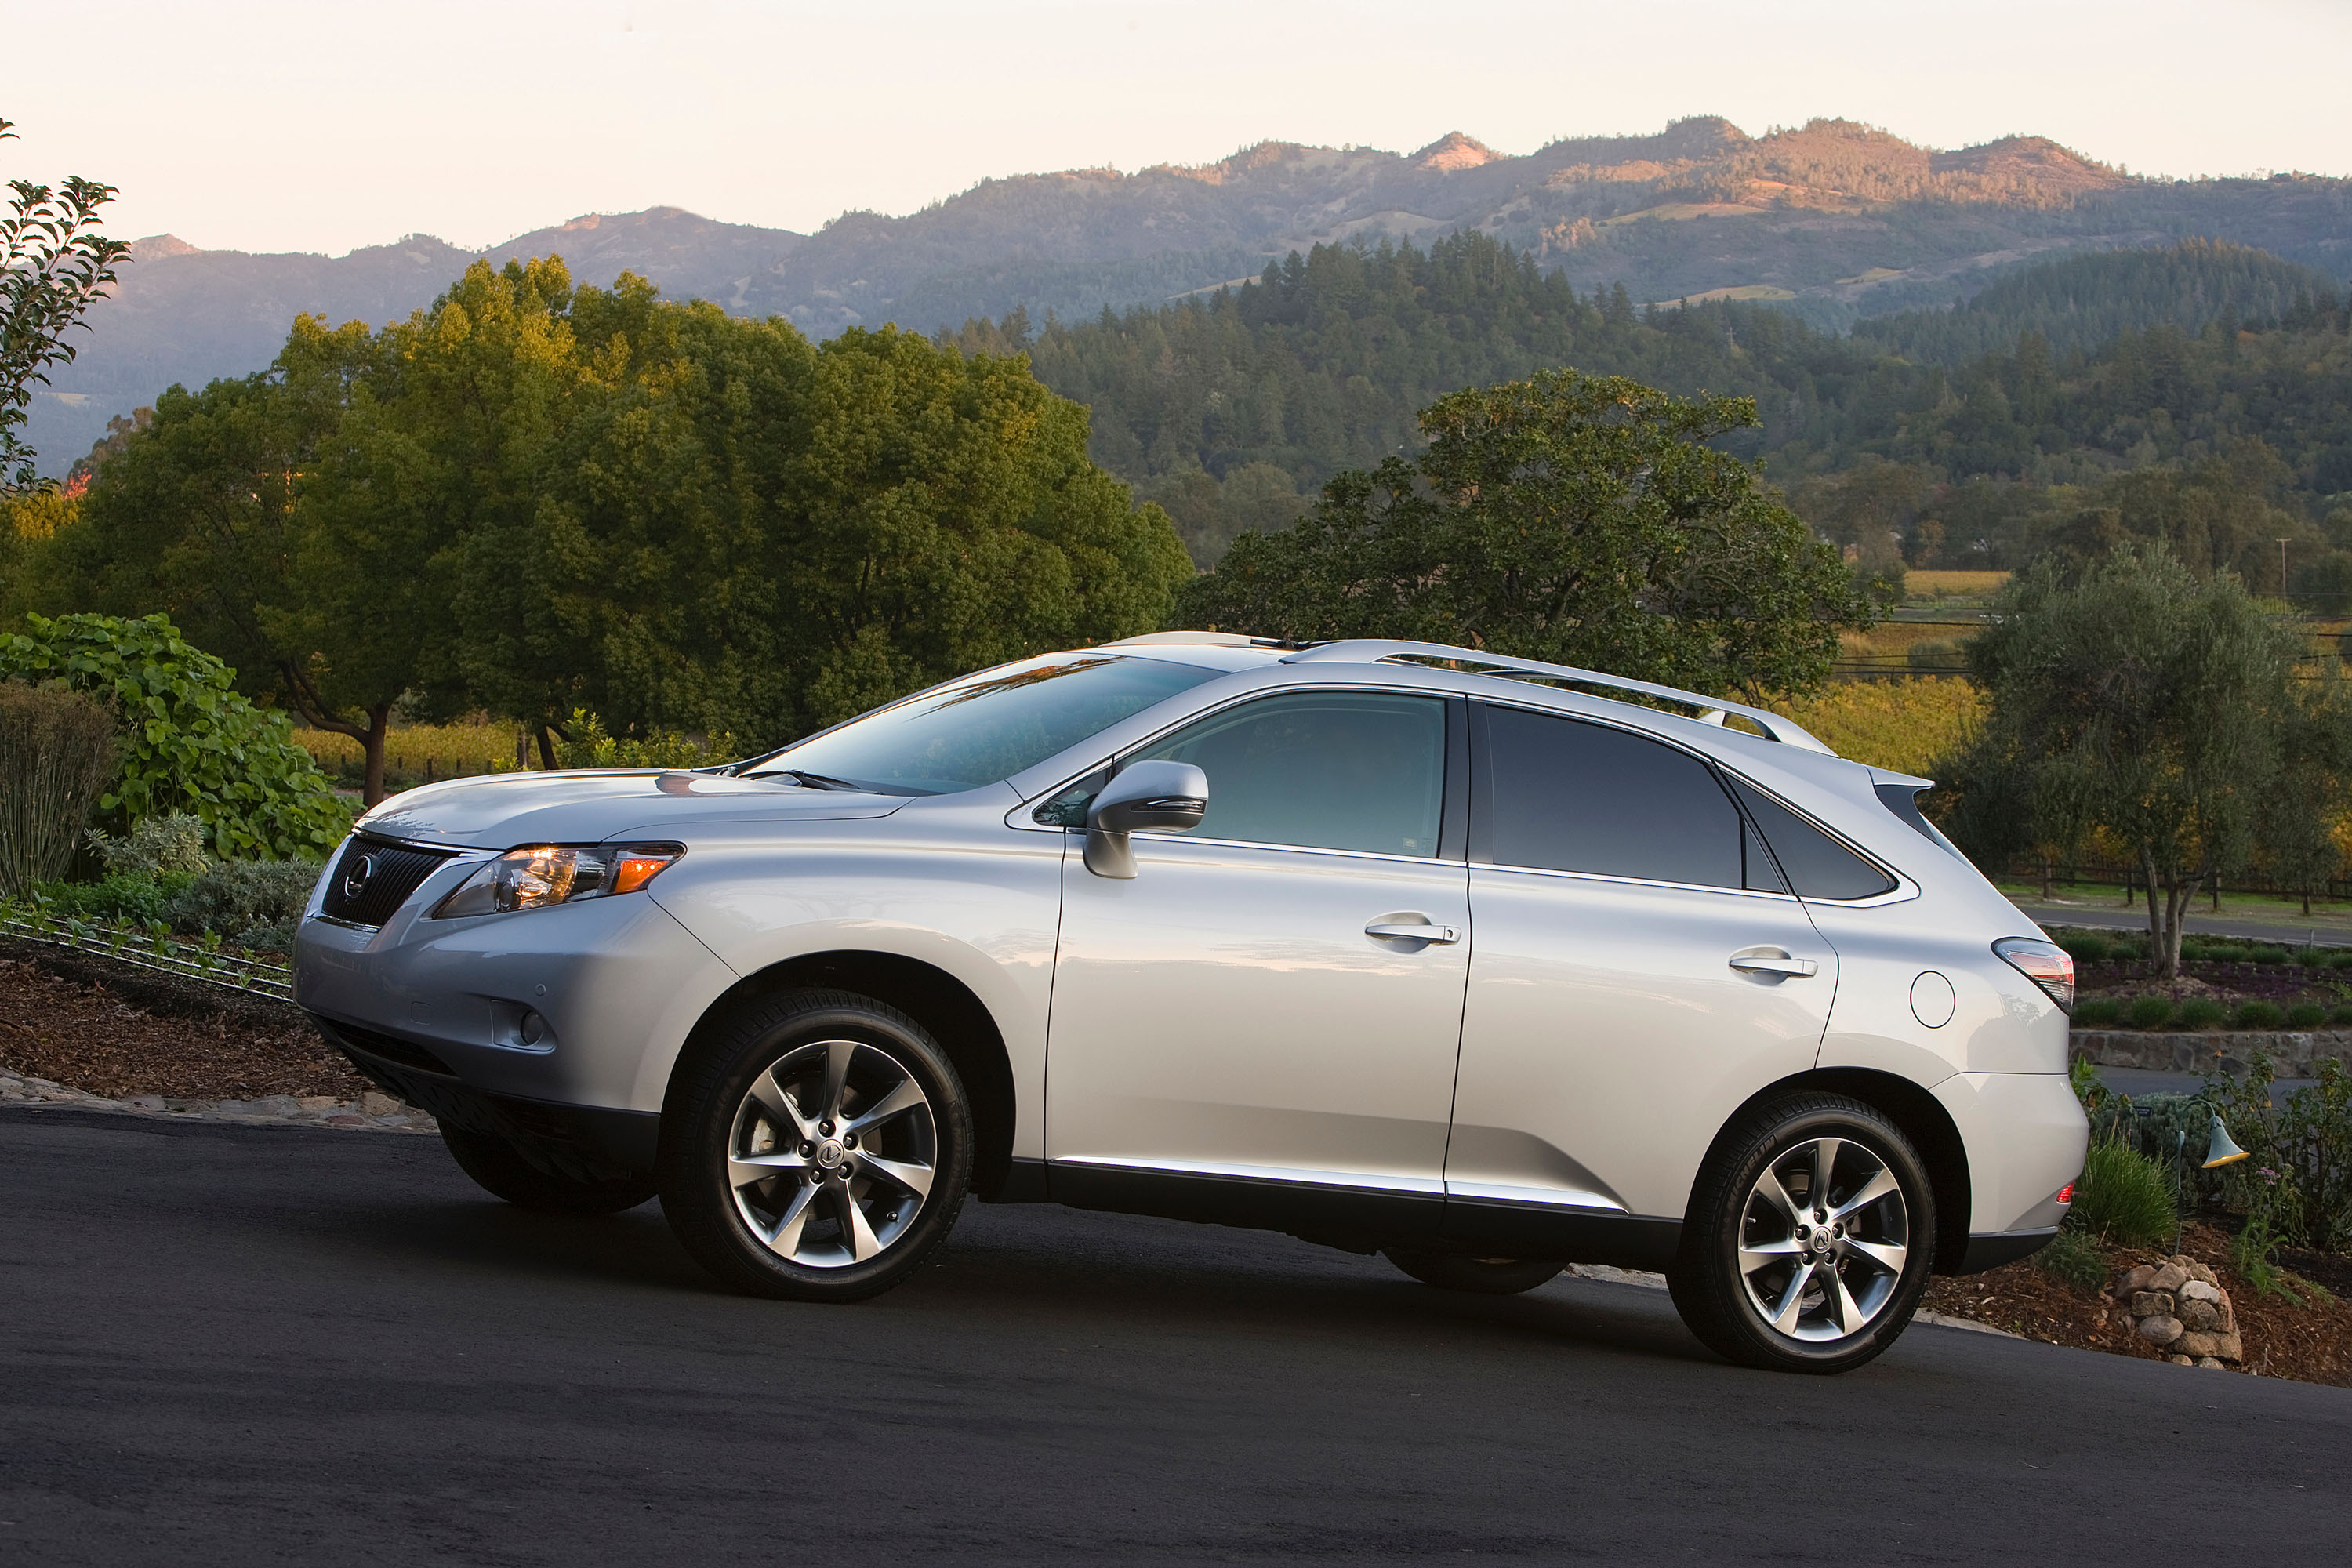 2010 Lexus RX 350 Soft Squishy Safe and High